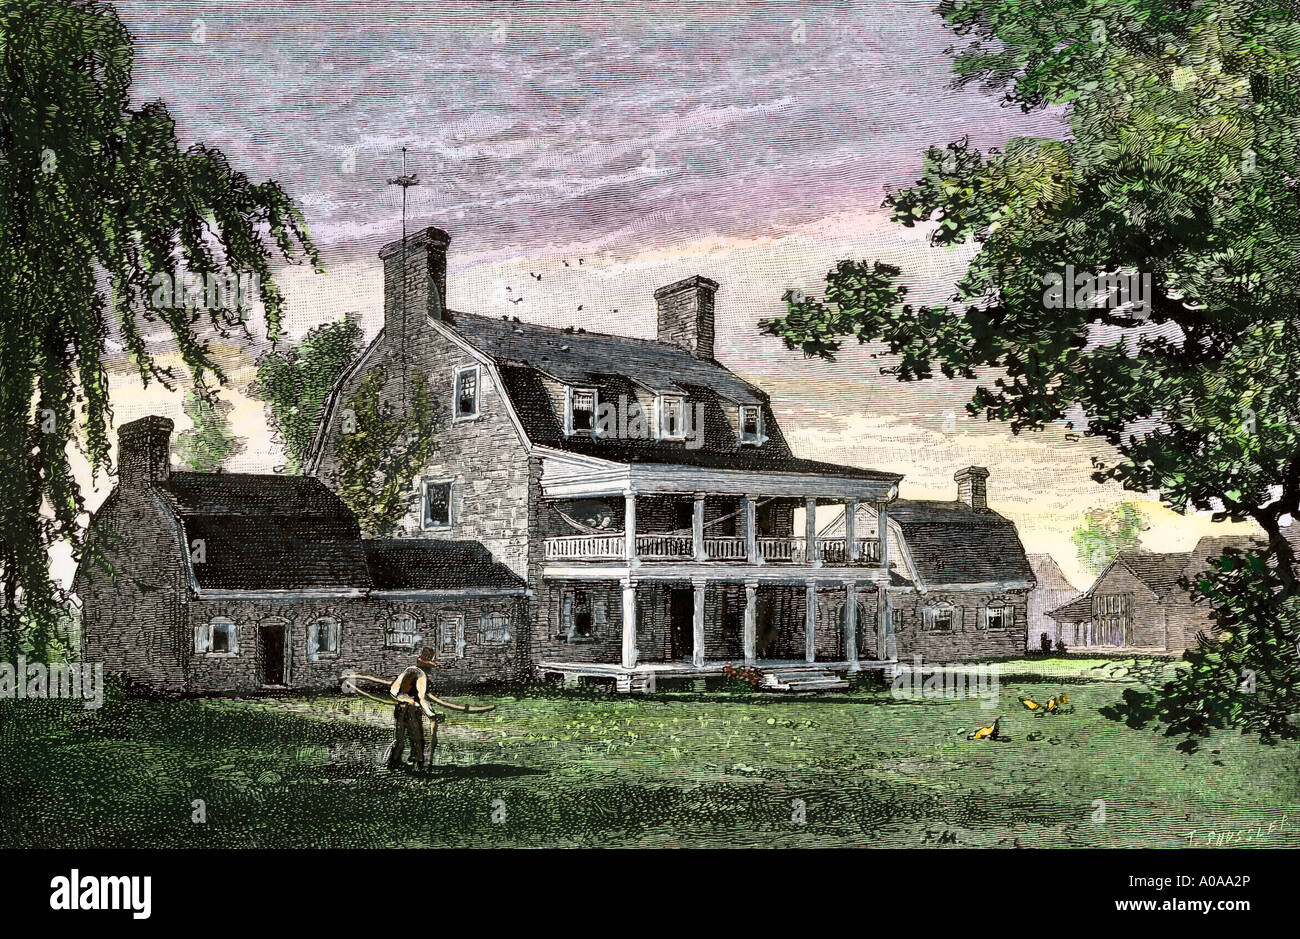 Maryland plantation manor house with outbuildings 1800s for 1800s plantation homes